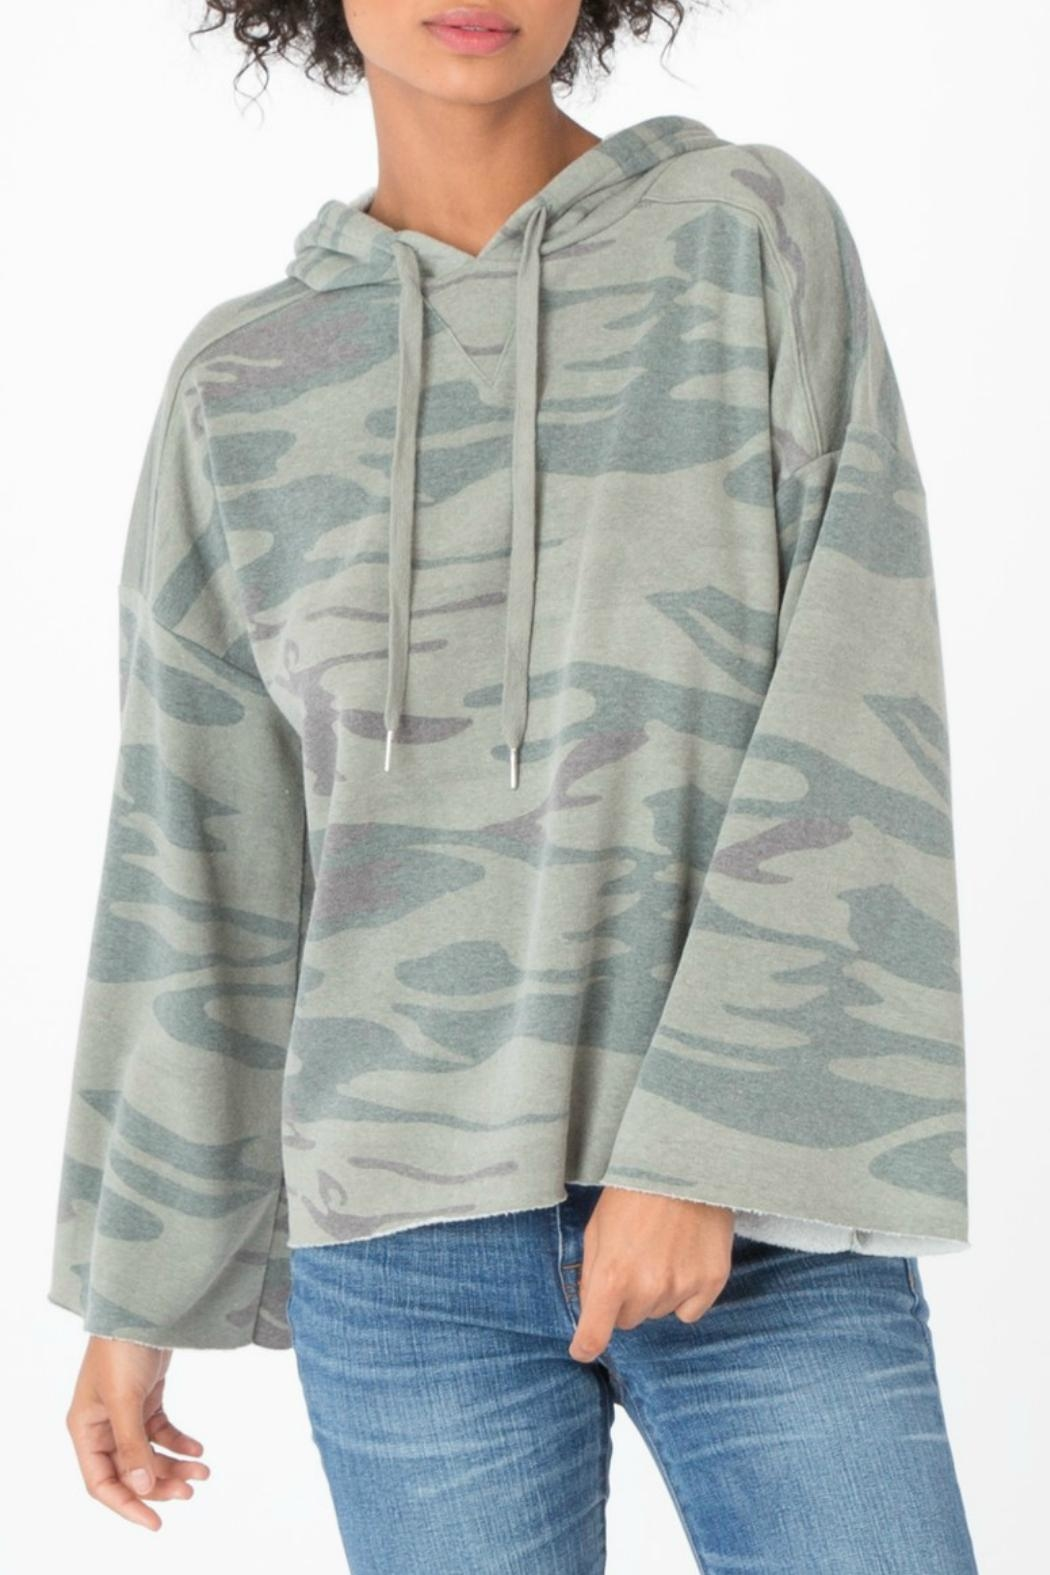 z supply Loft Camo Pullover Top - Main Image